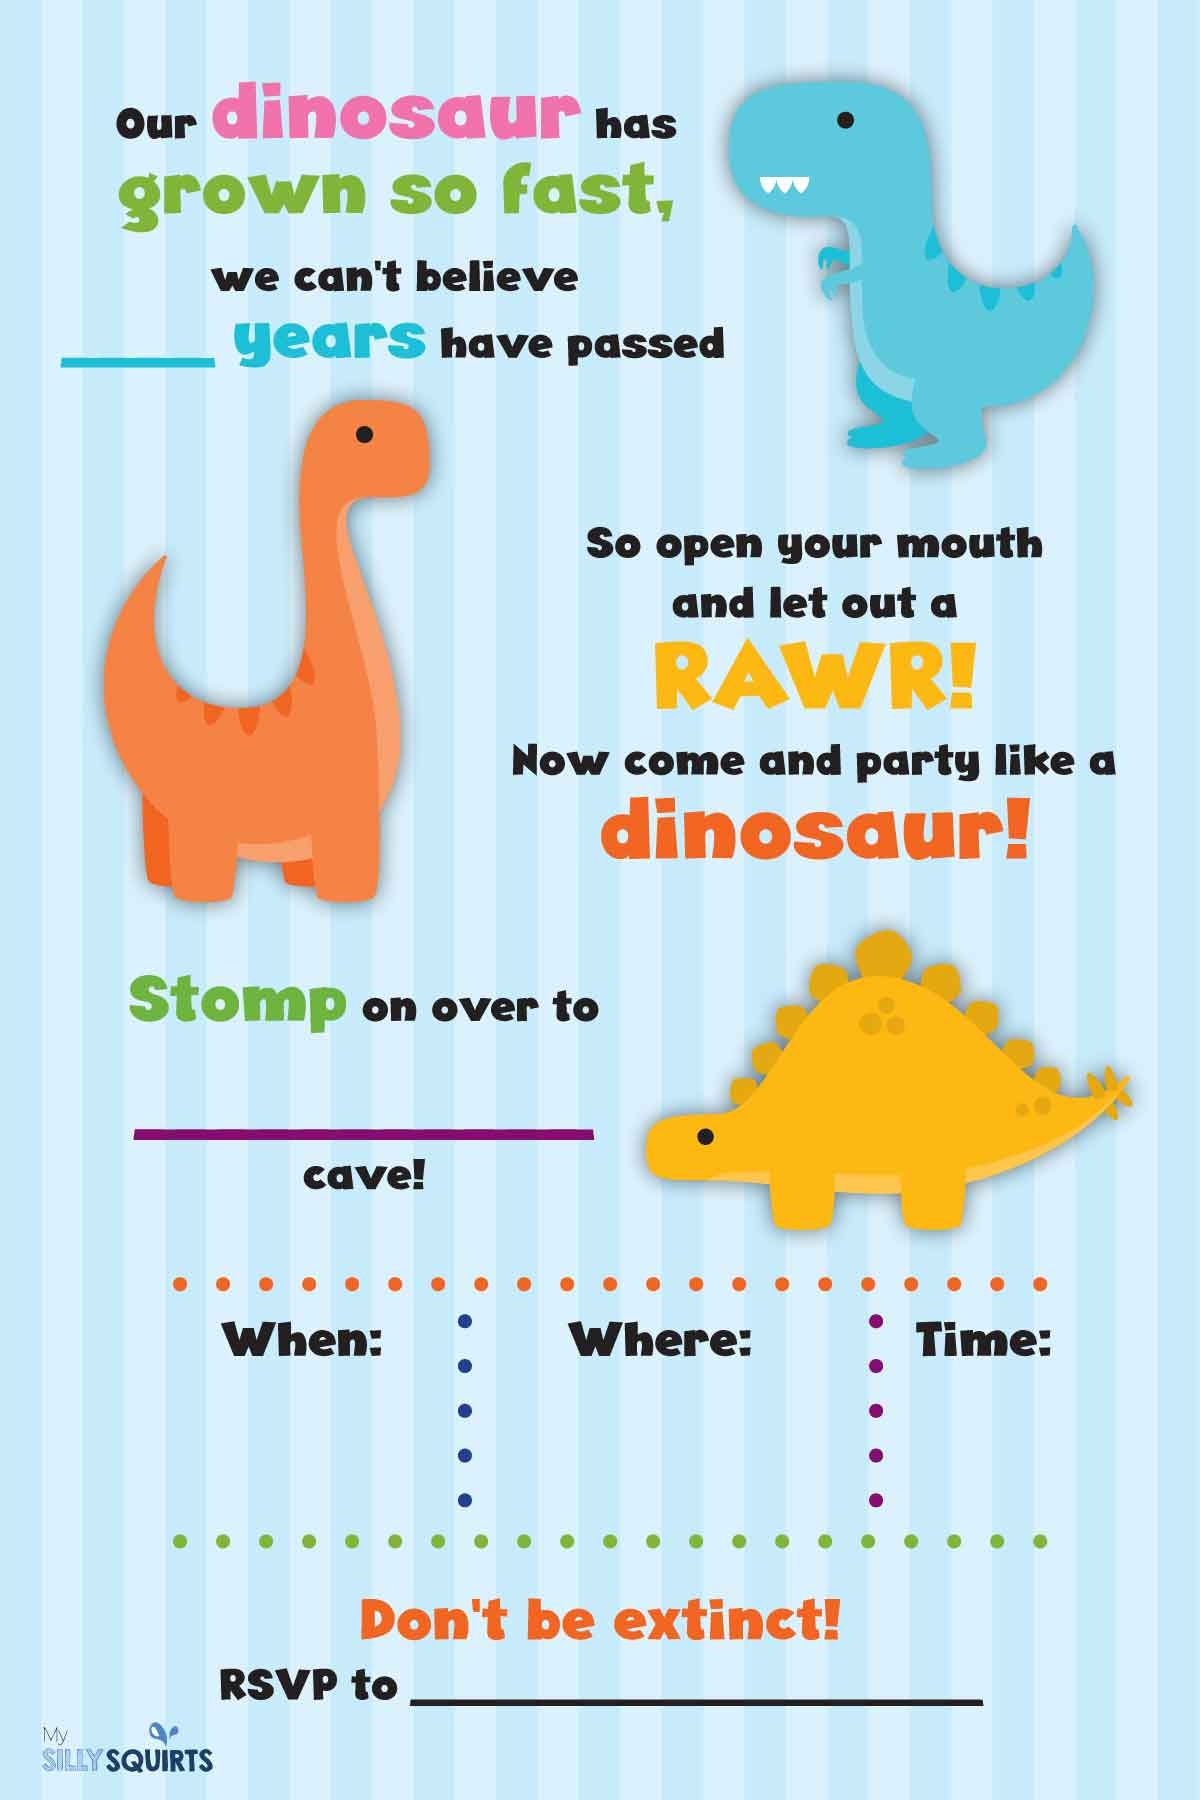 Rawr! Free Dinosaur Birthday Party Printables   My Silly Squirts - Free Printable Dinosaur Labels